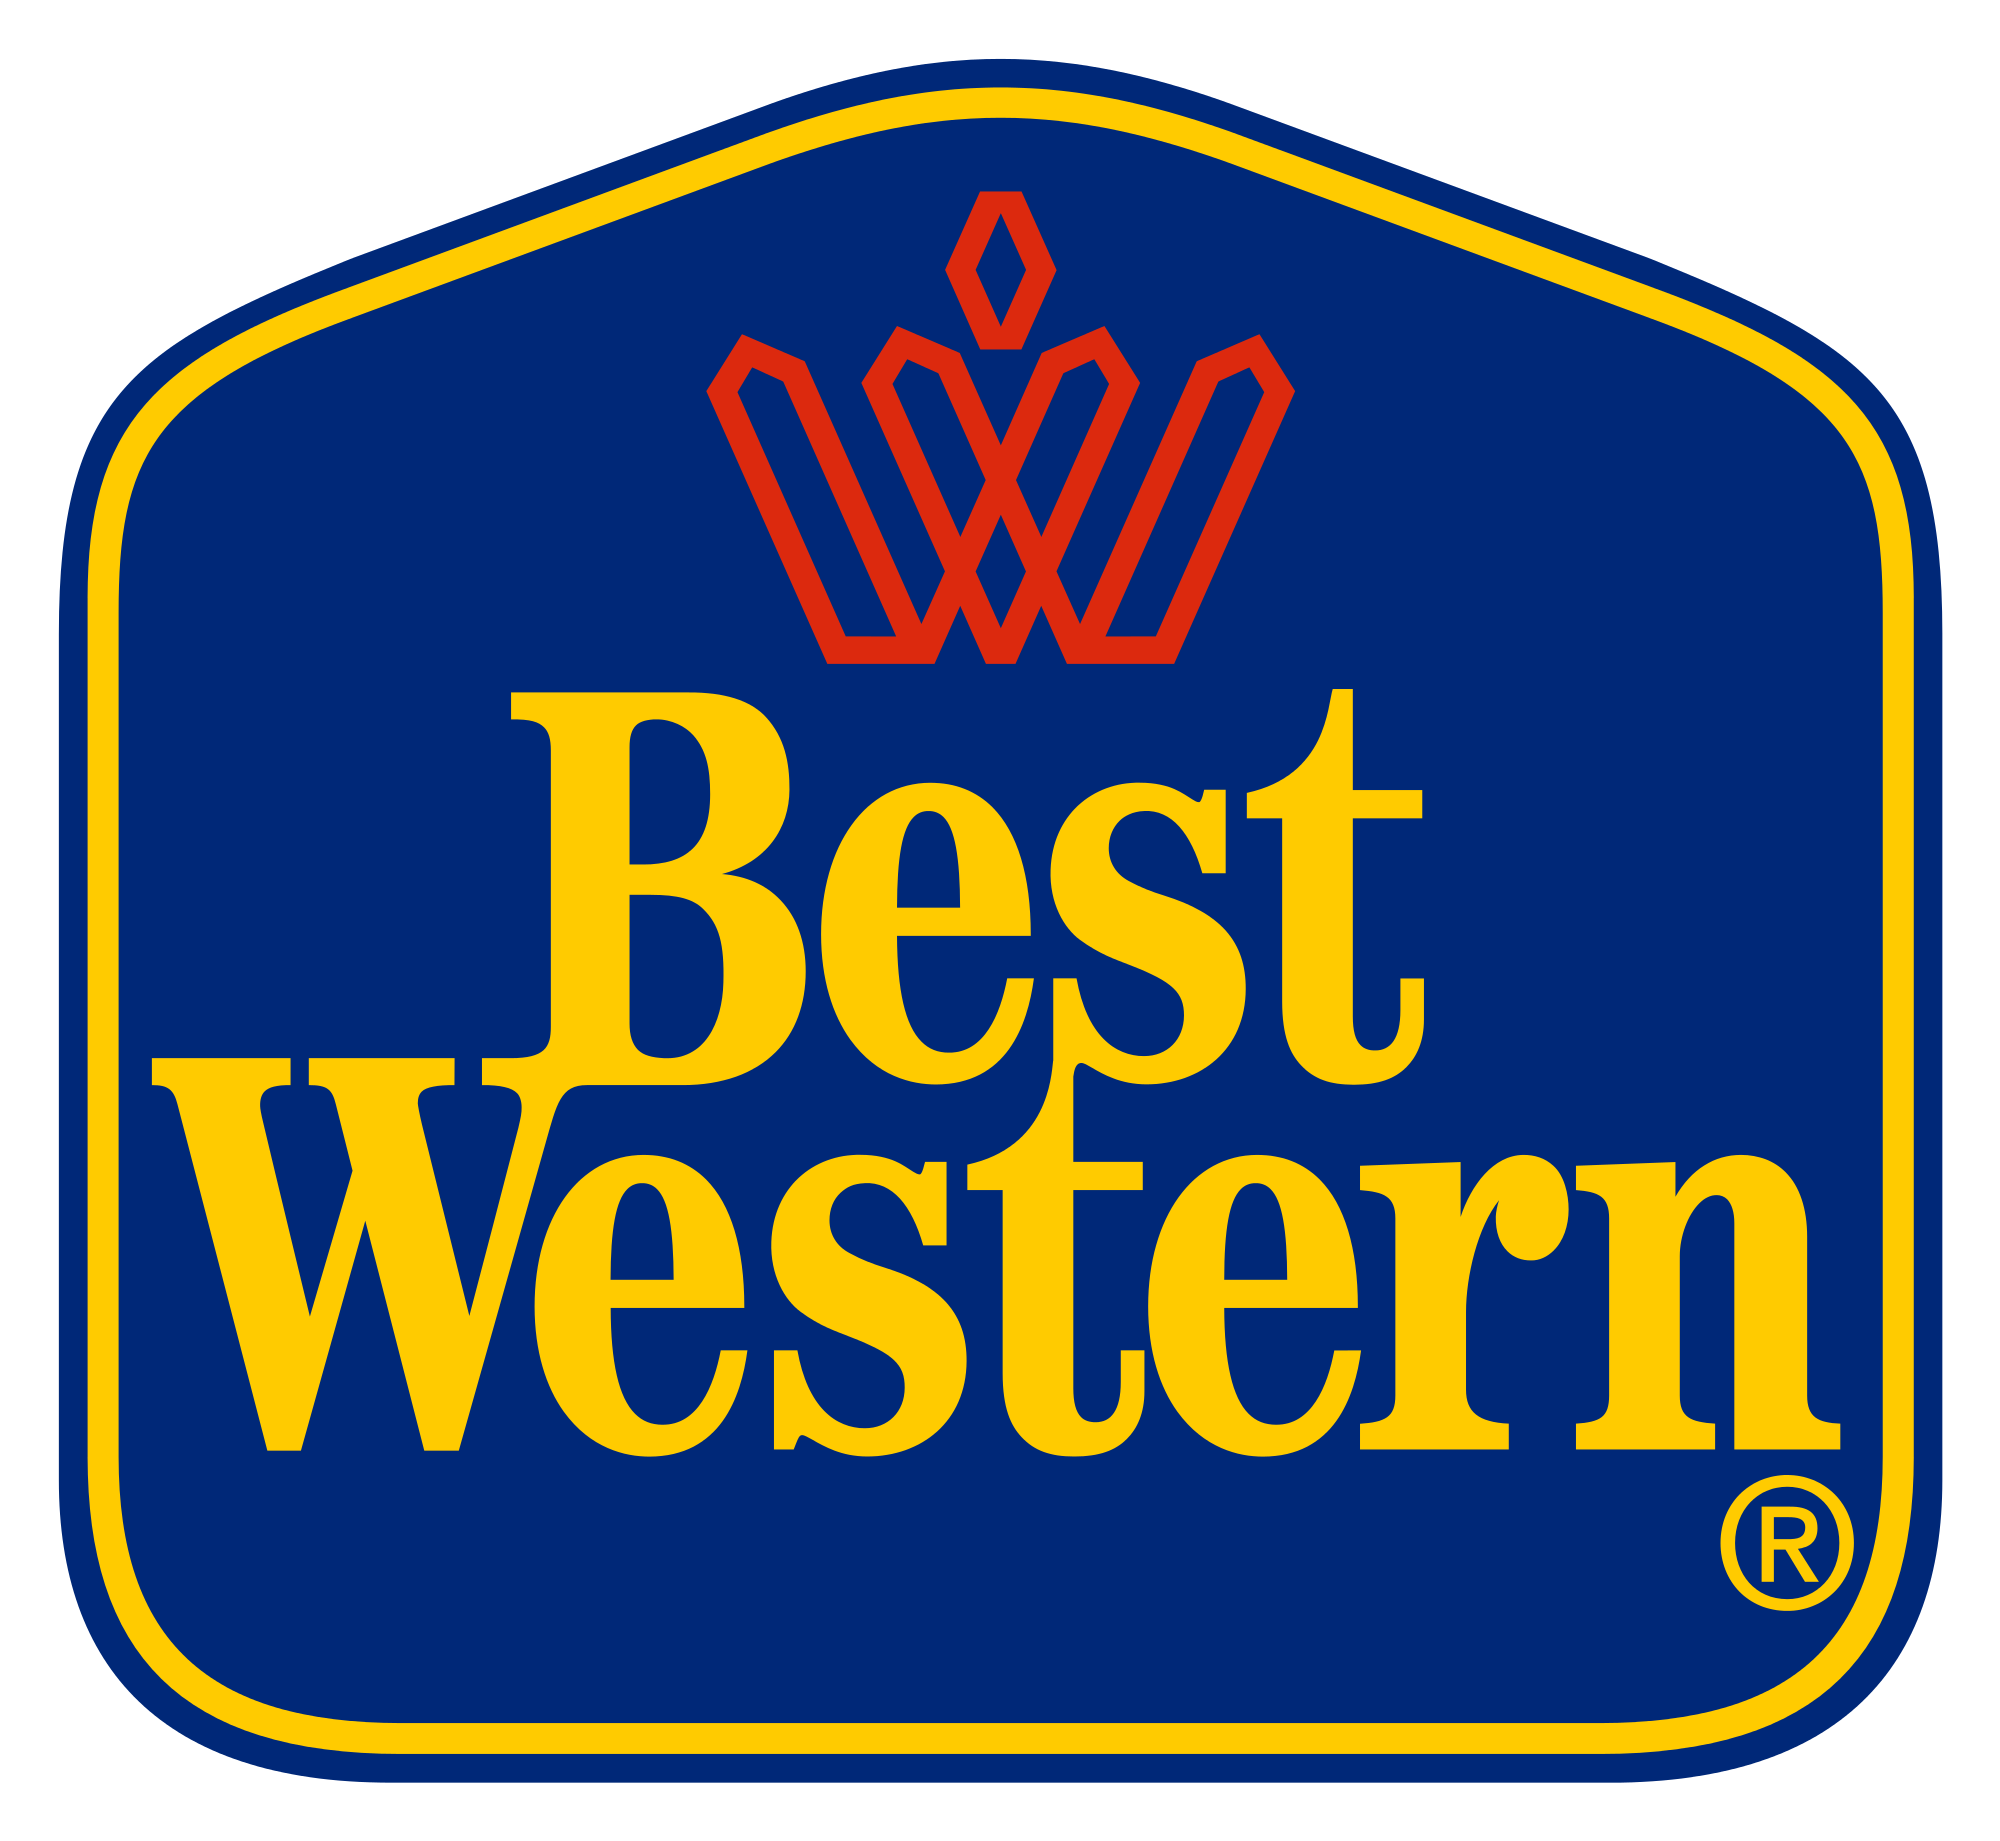 Best Western Hotels Coupon